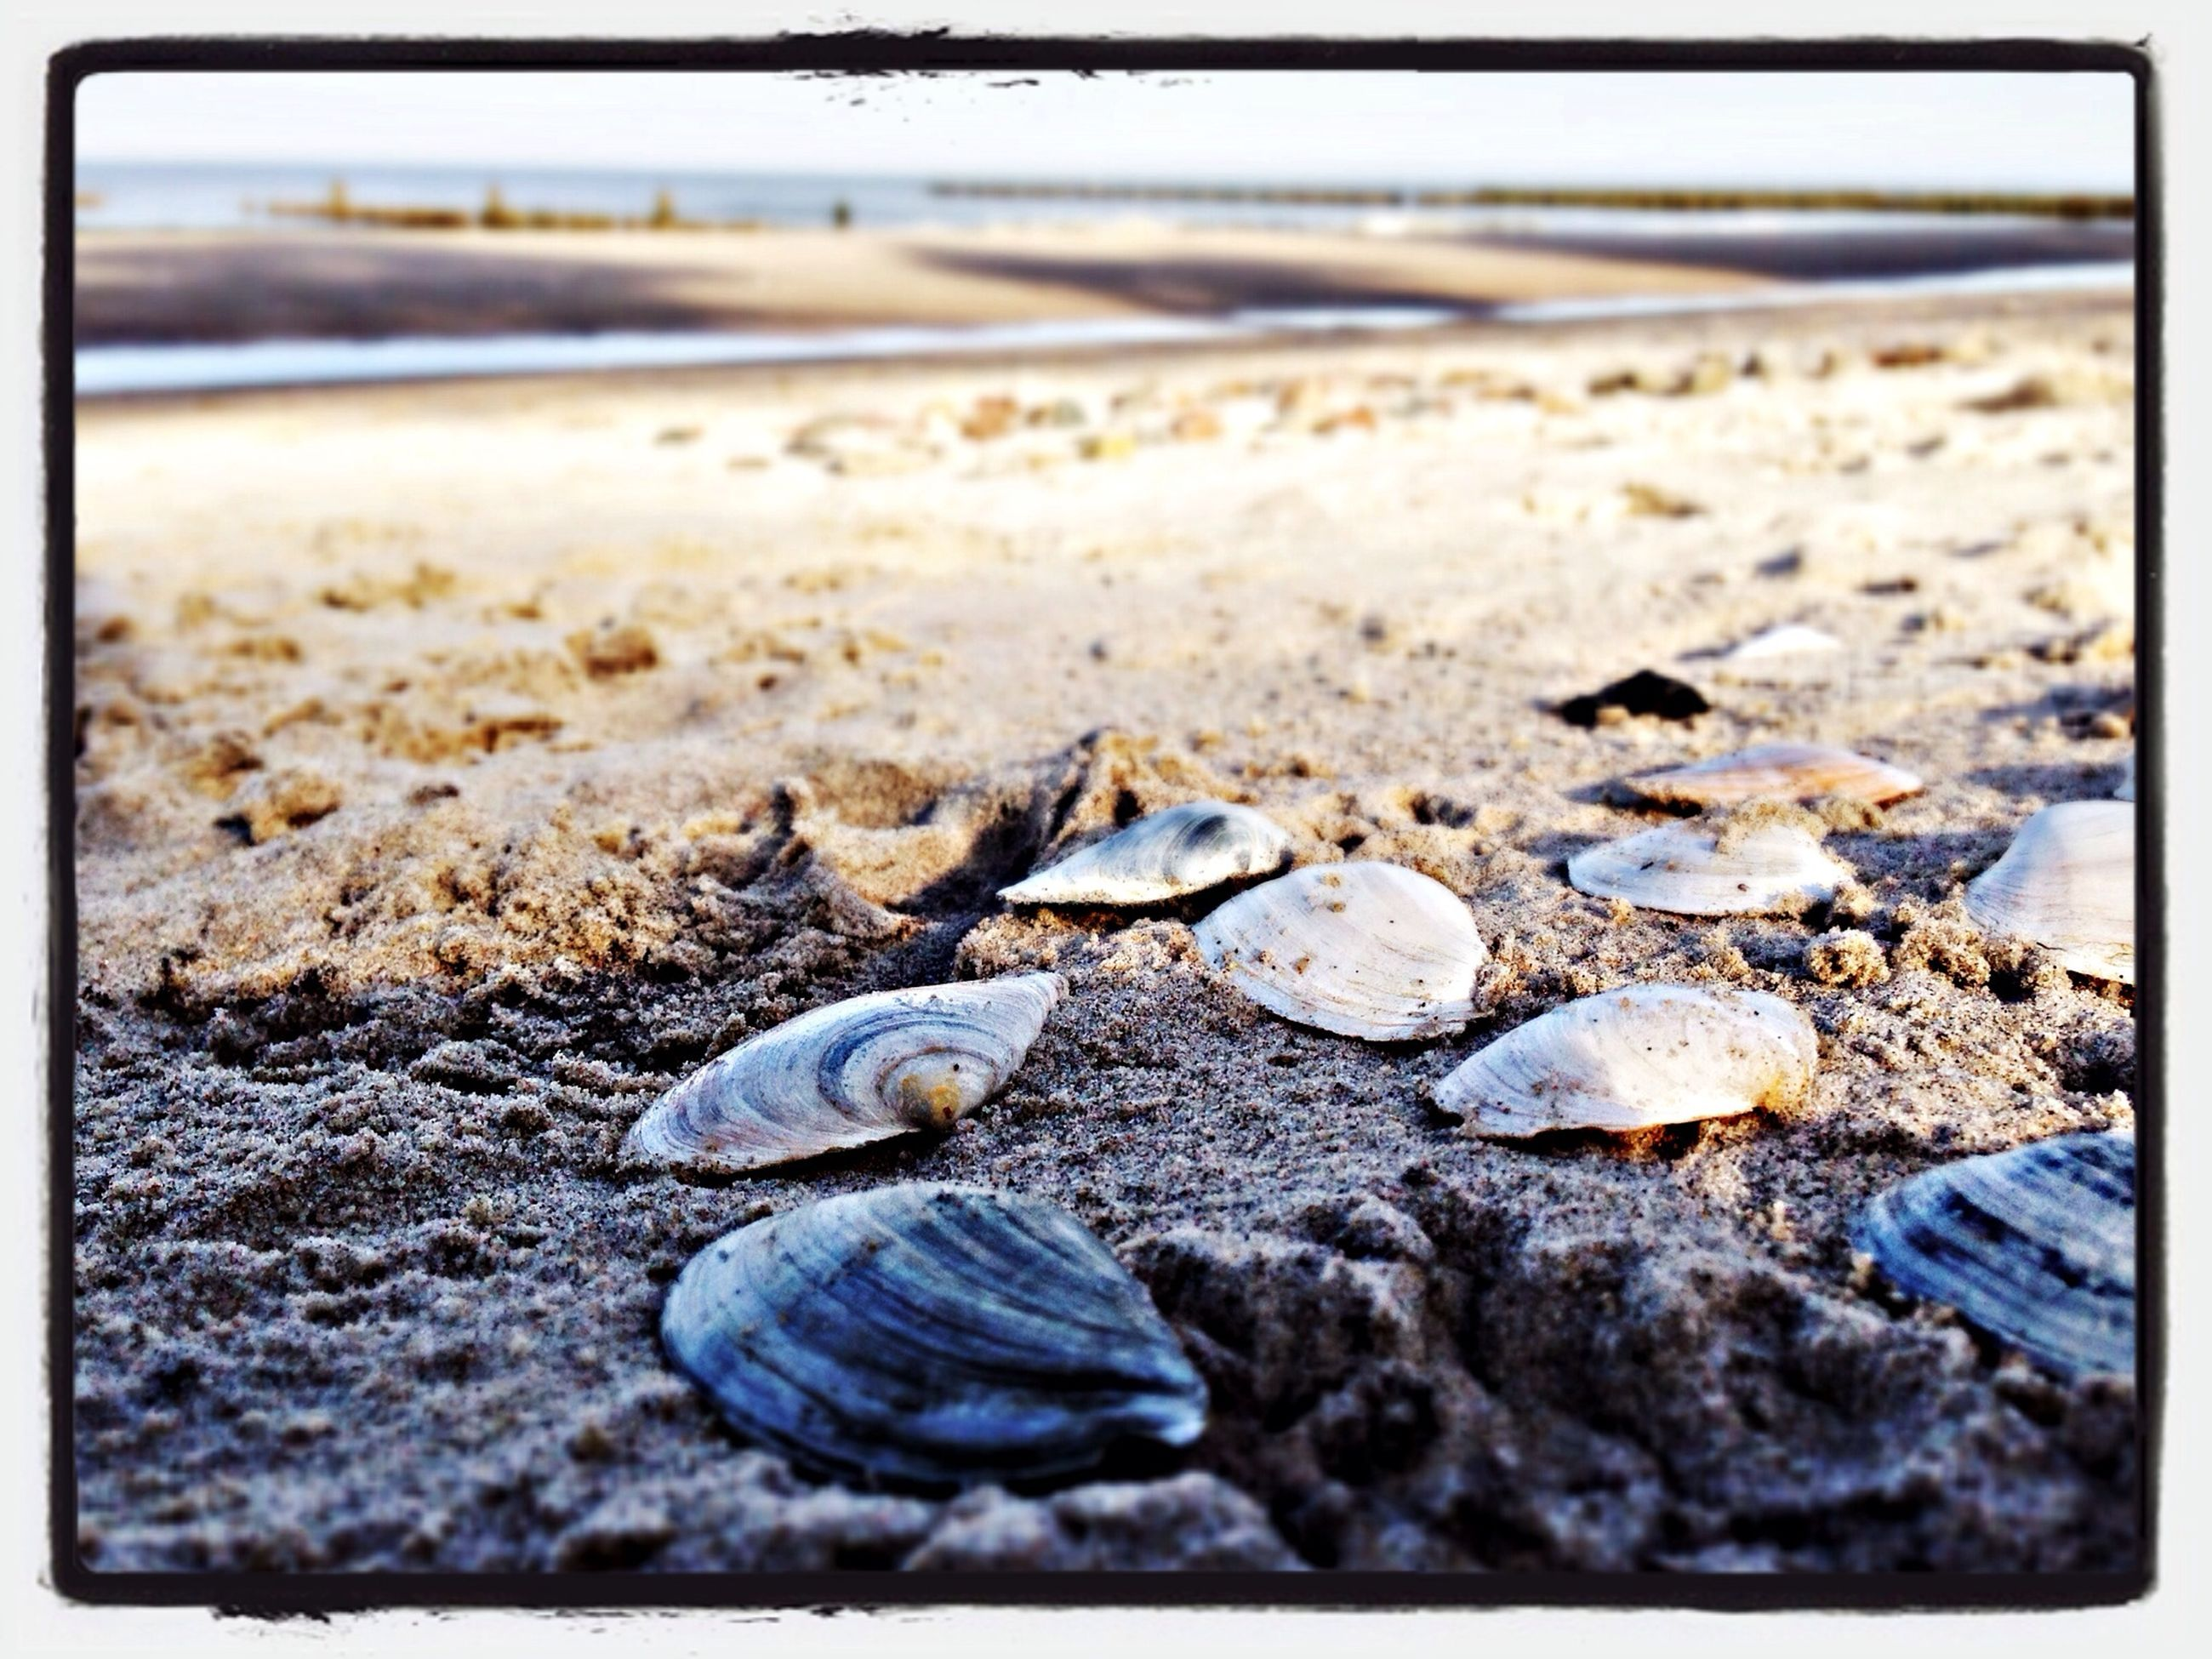 beach, sand, shore, transfer print, pebble, auto post production filter, seashell, stone - object, sea, surface level, nature, selective focus, tranquility, water, stone, close-up, shell, rock - object, animal shell, outdoors